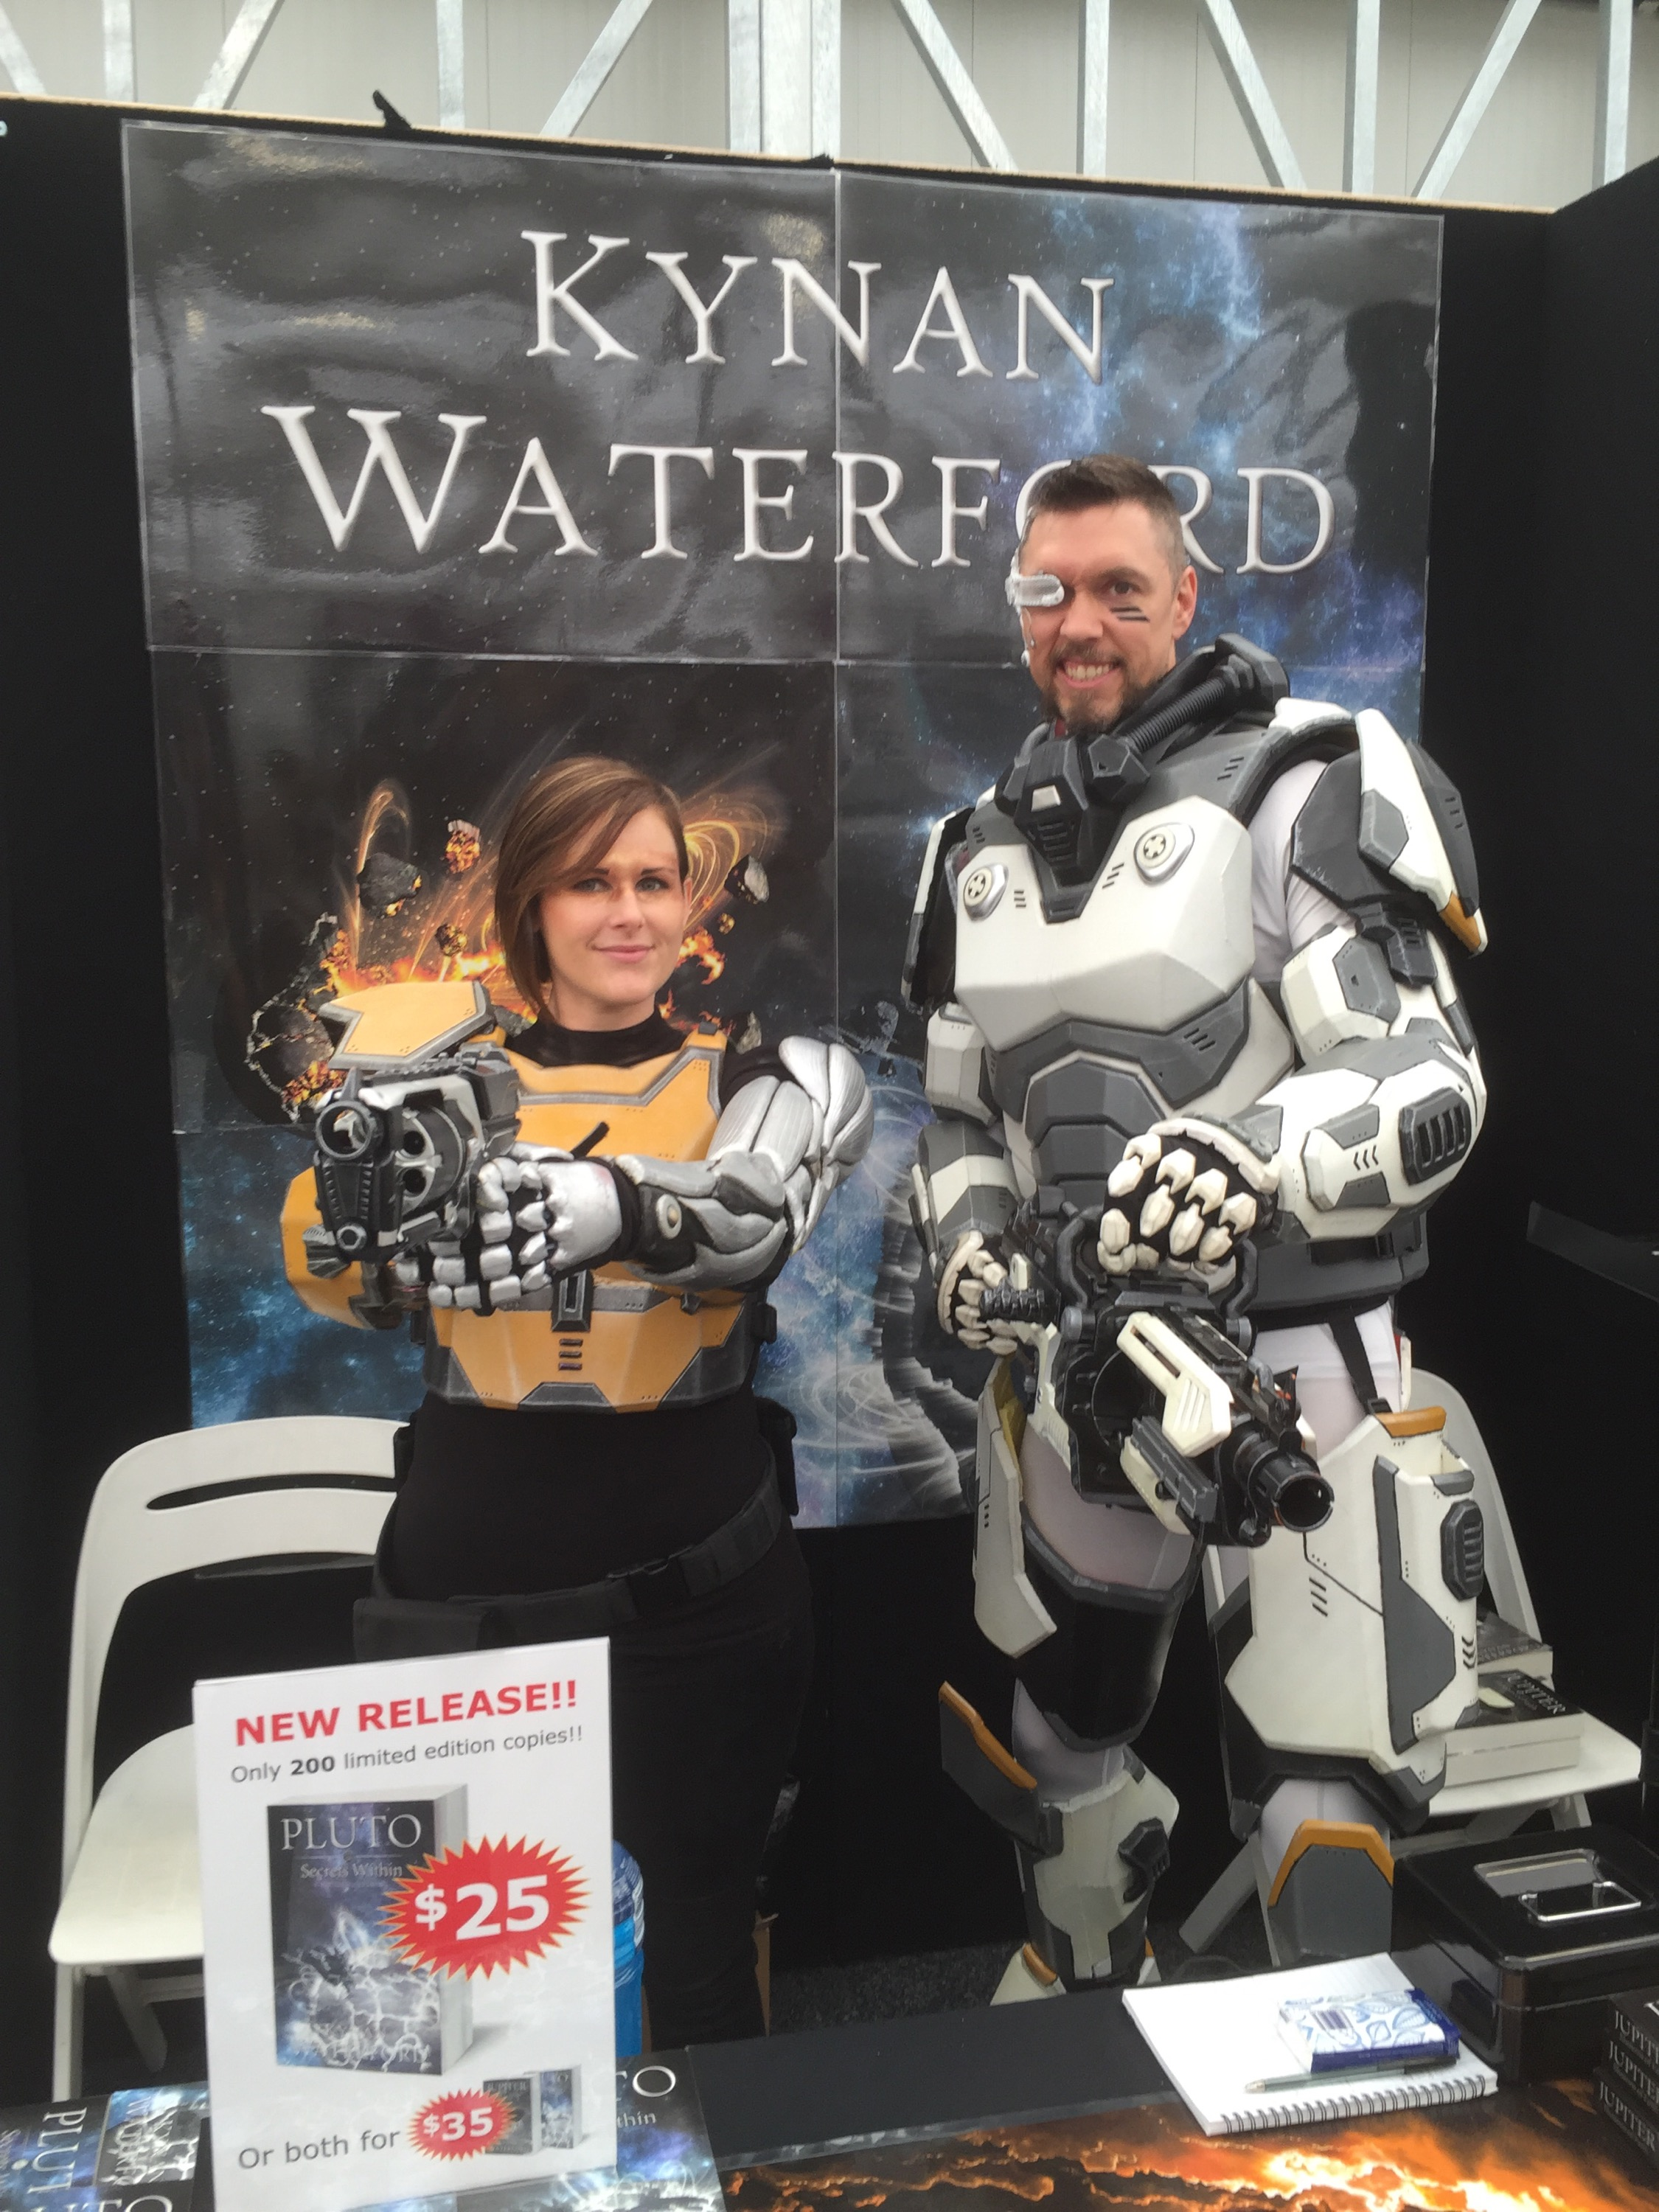 Kynan Waterford and partner in costume at OzComicCon.